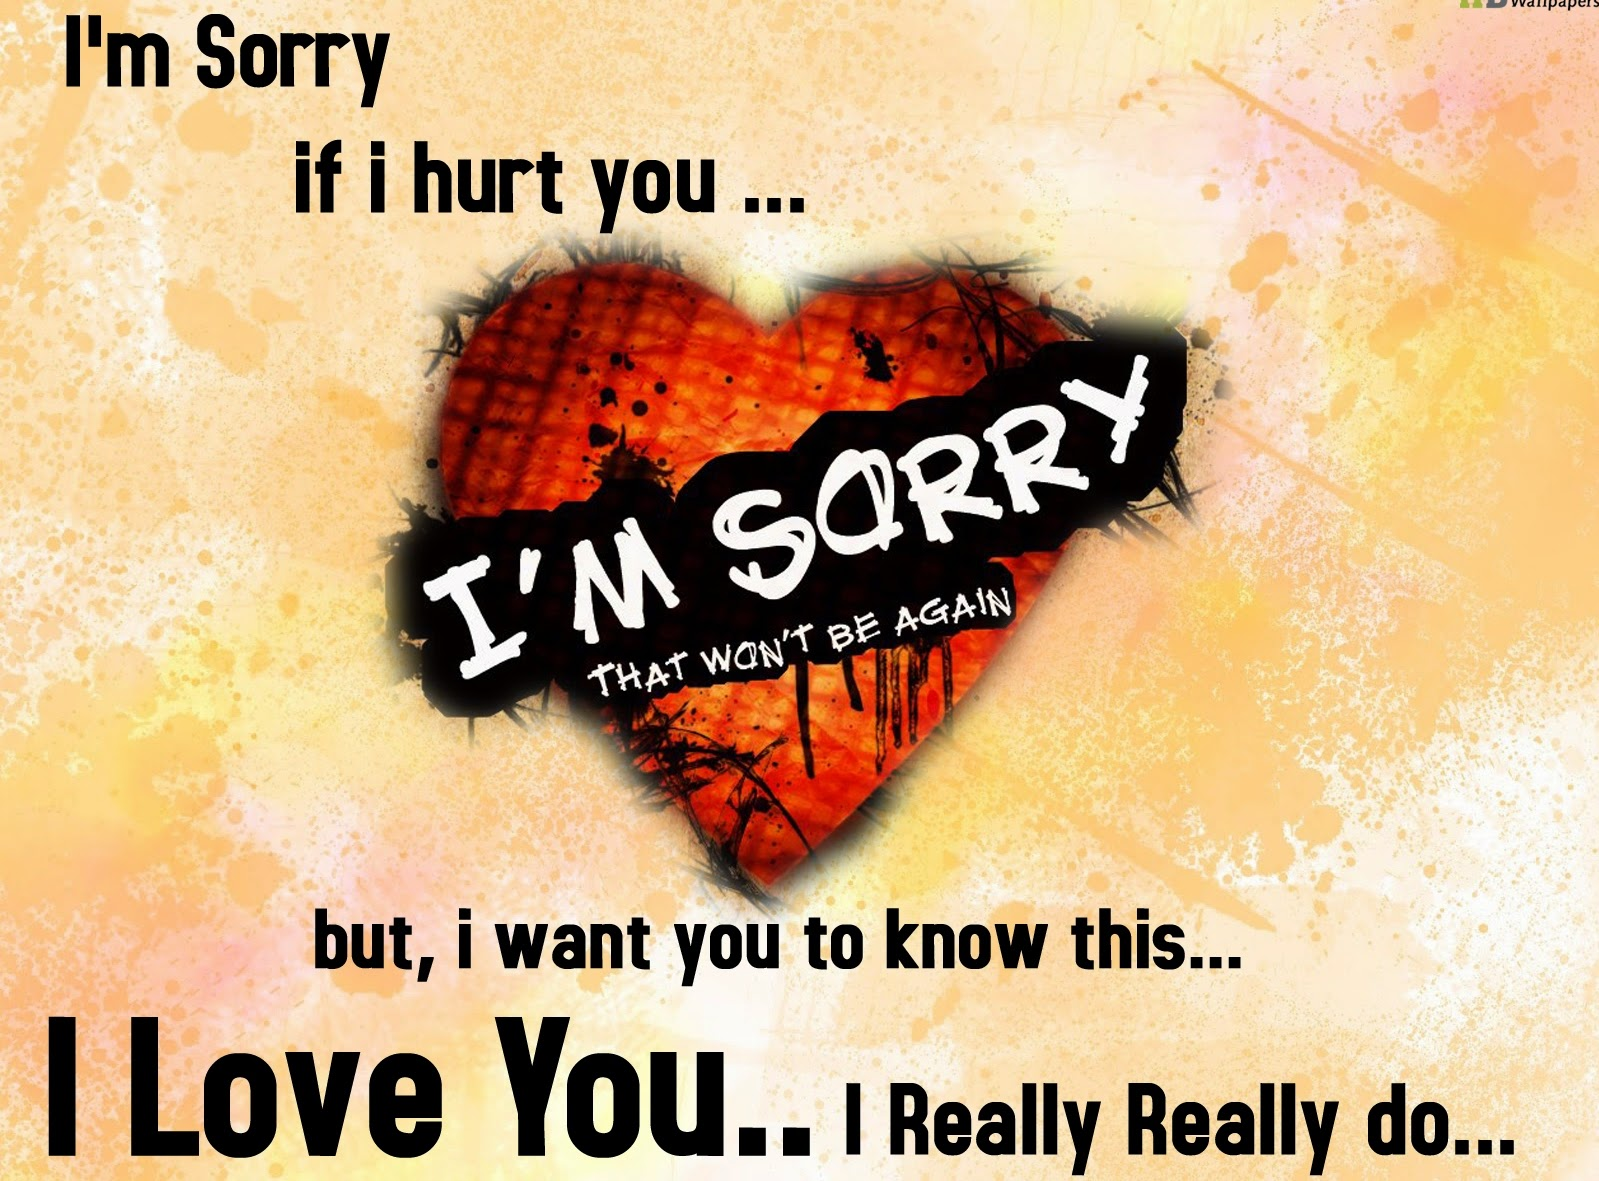 I Really Love You Quotes For Him In Hindi : Funny Quotes About Being Sorry. QuotesGram